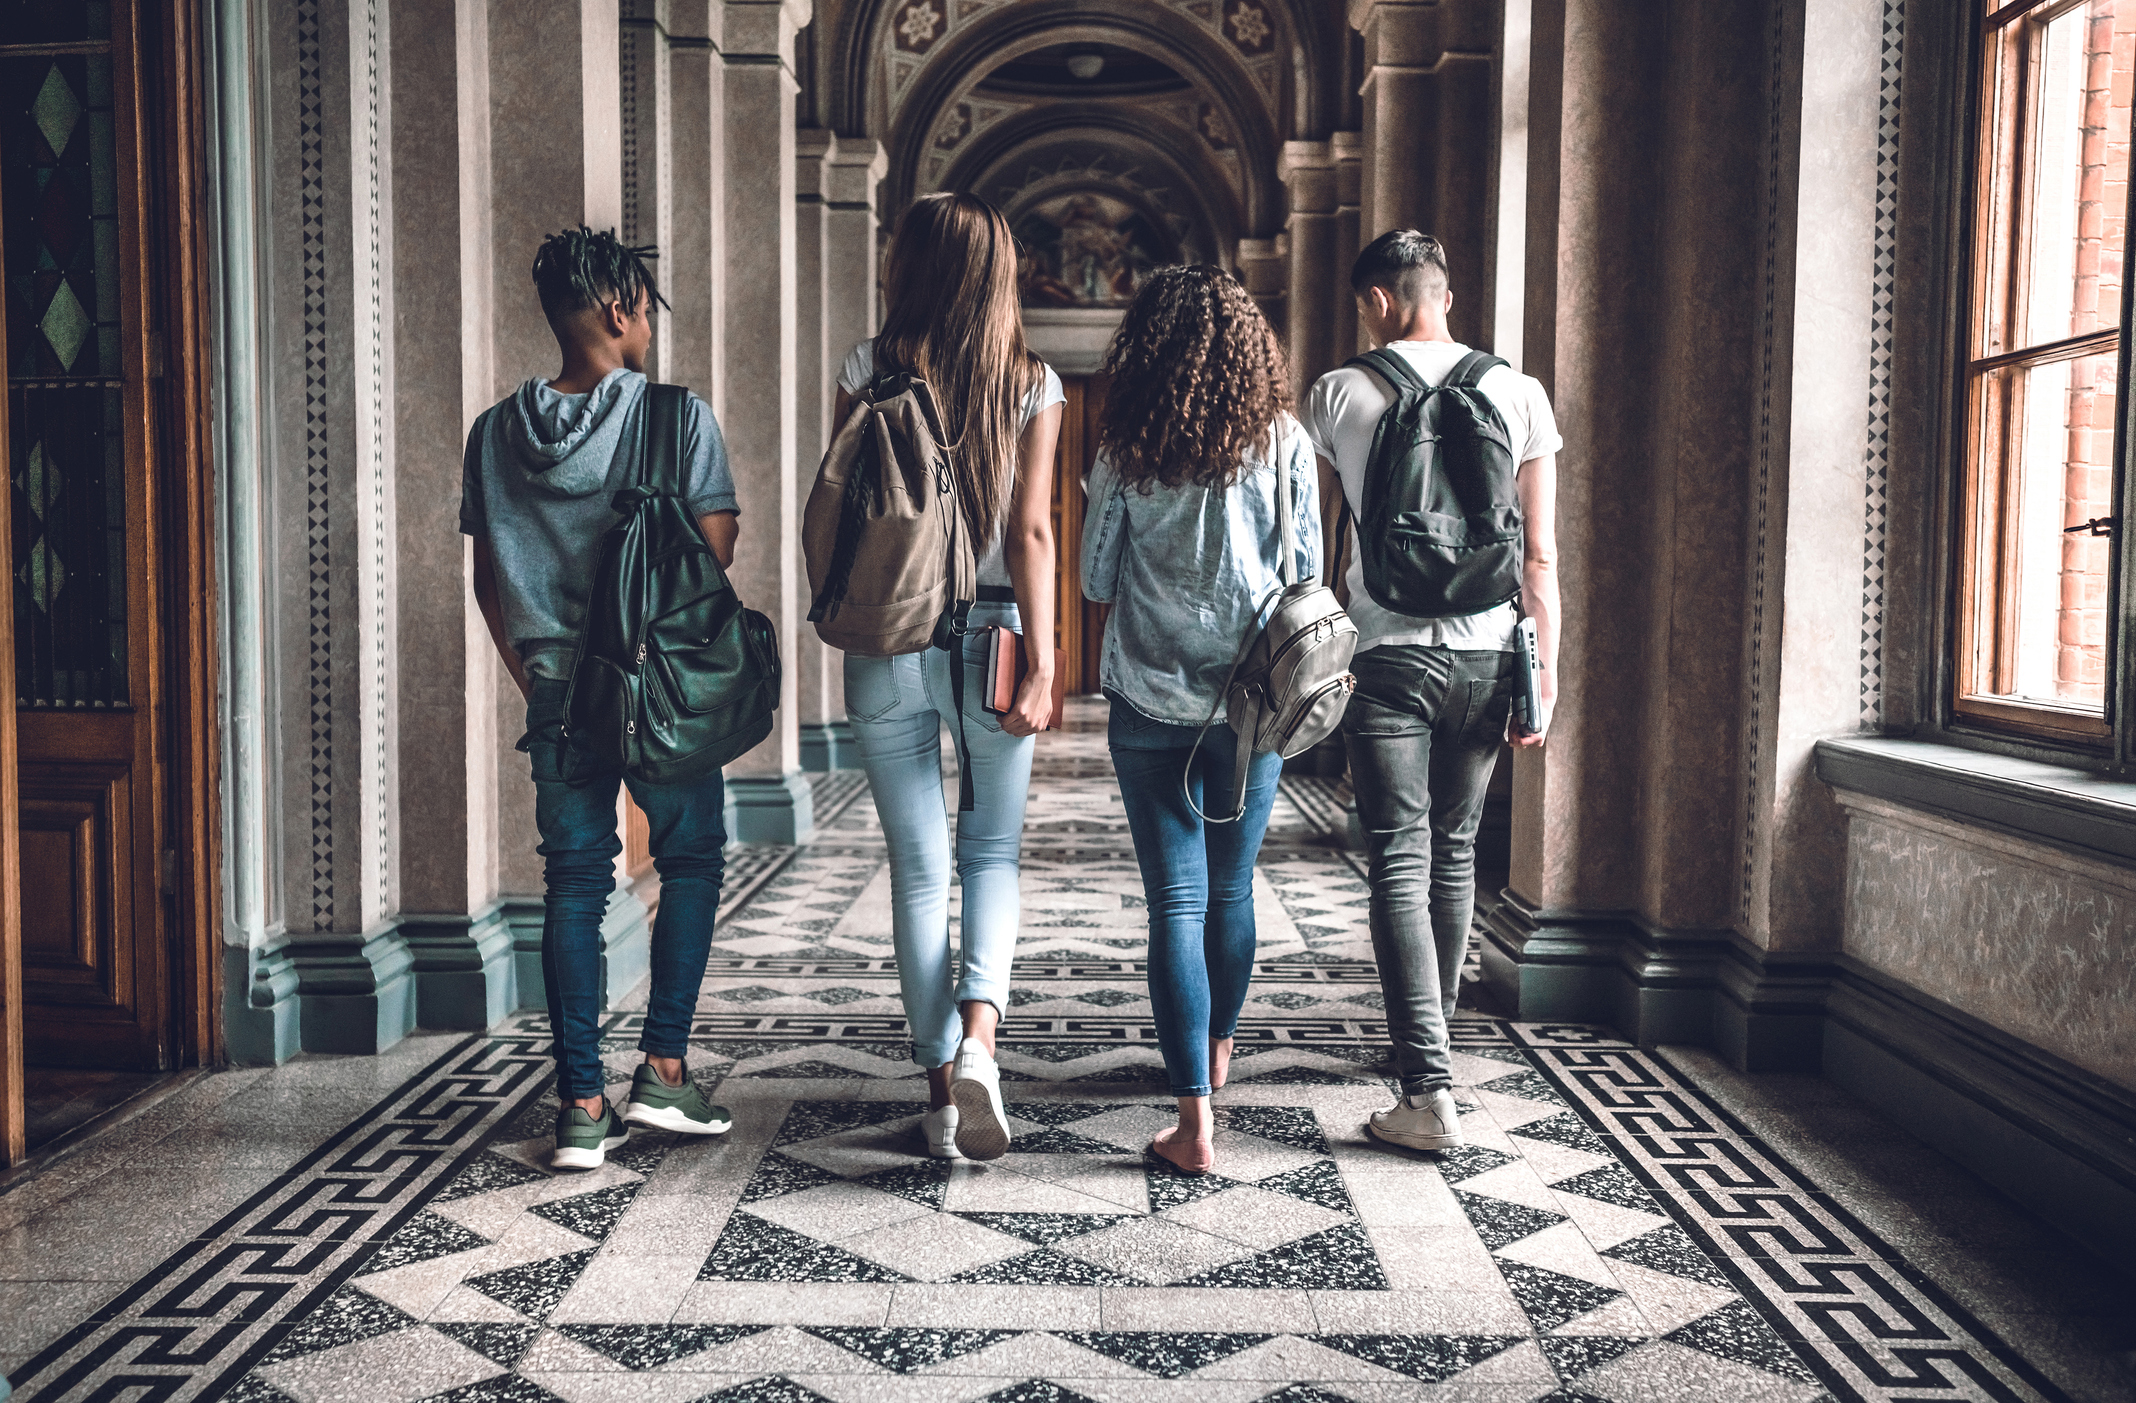 College students walking in an arched hallway.